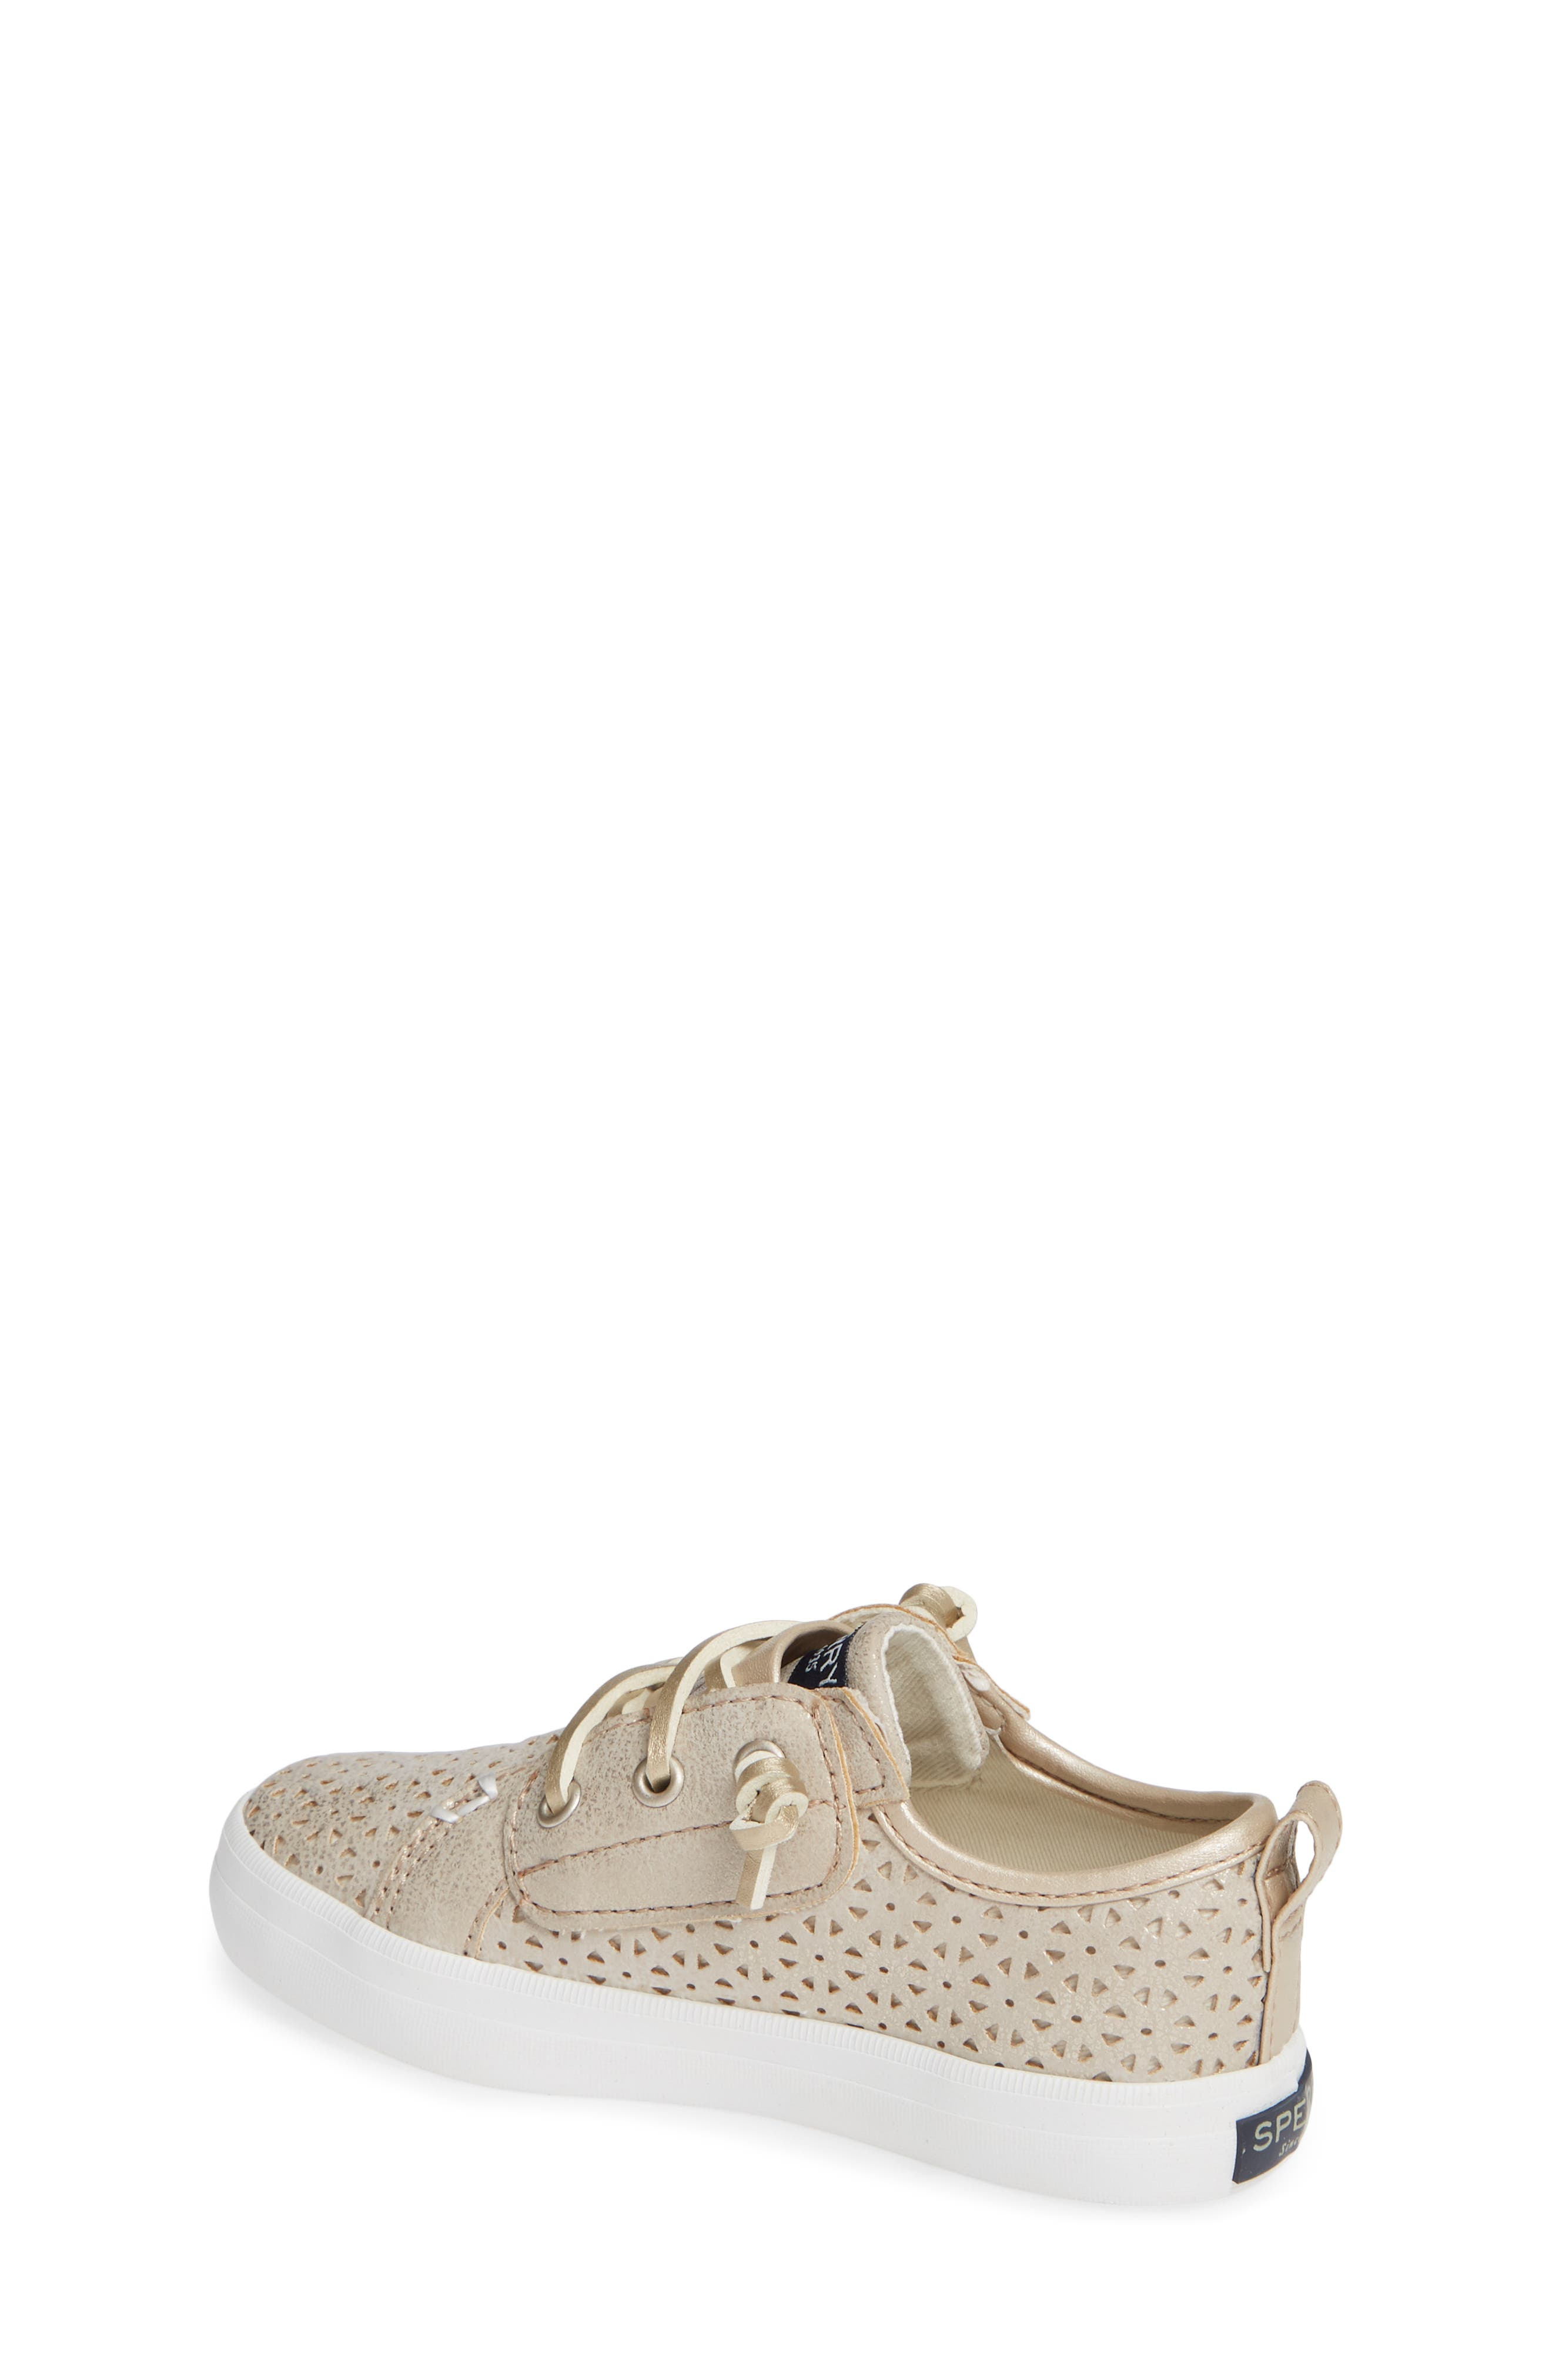 Sperry Crest Vibe Sneaker,                             Alternate thumbnail 2, color,                             CHAMPAGNE SYNTHETIC